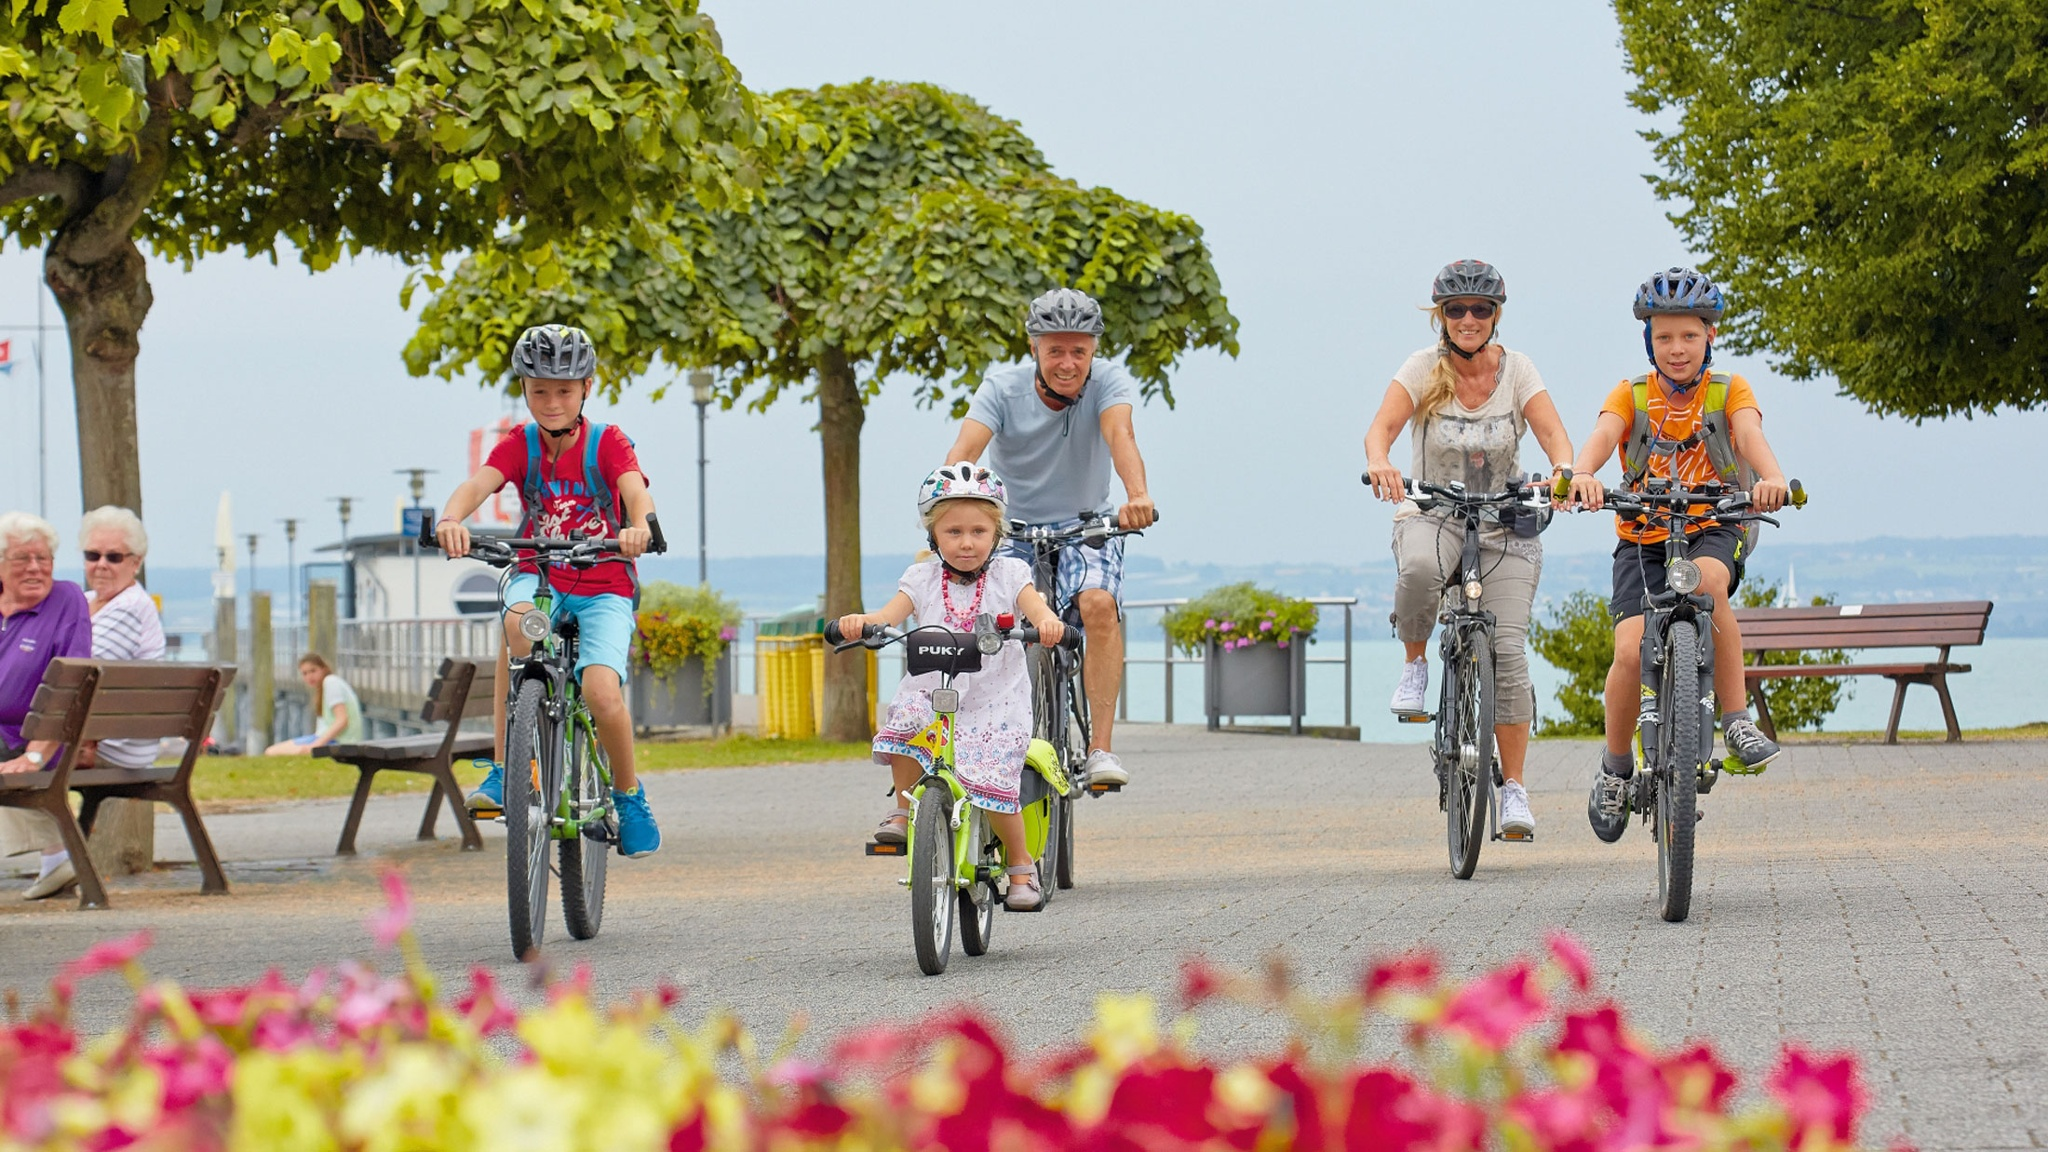 lake constance cycle route map Bodenseeradweg The Classic Lake Constance Cycle Path Bicycle lake constance cycle route map